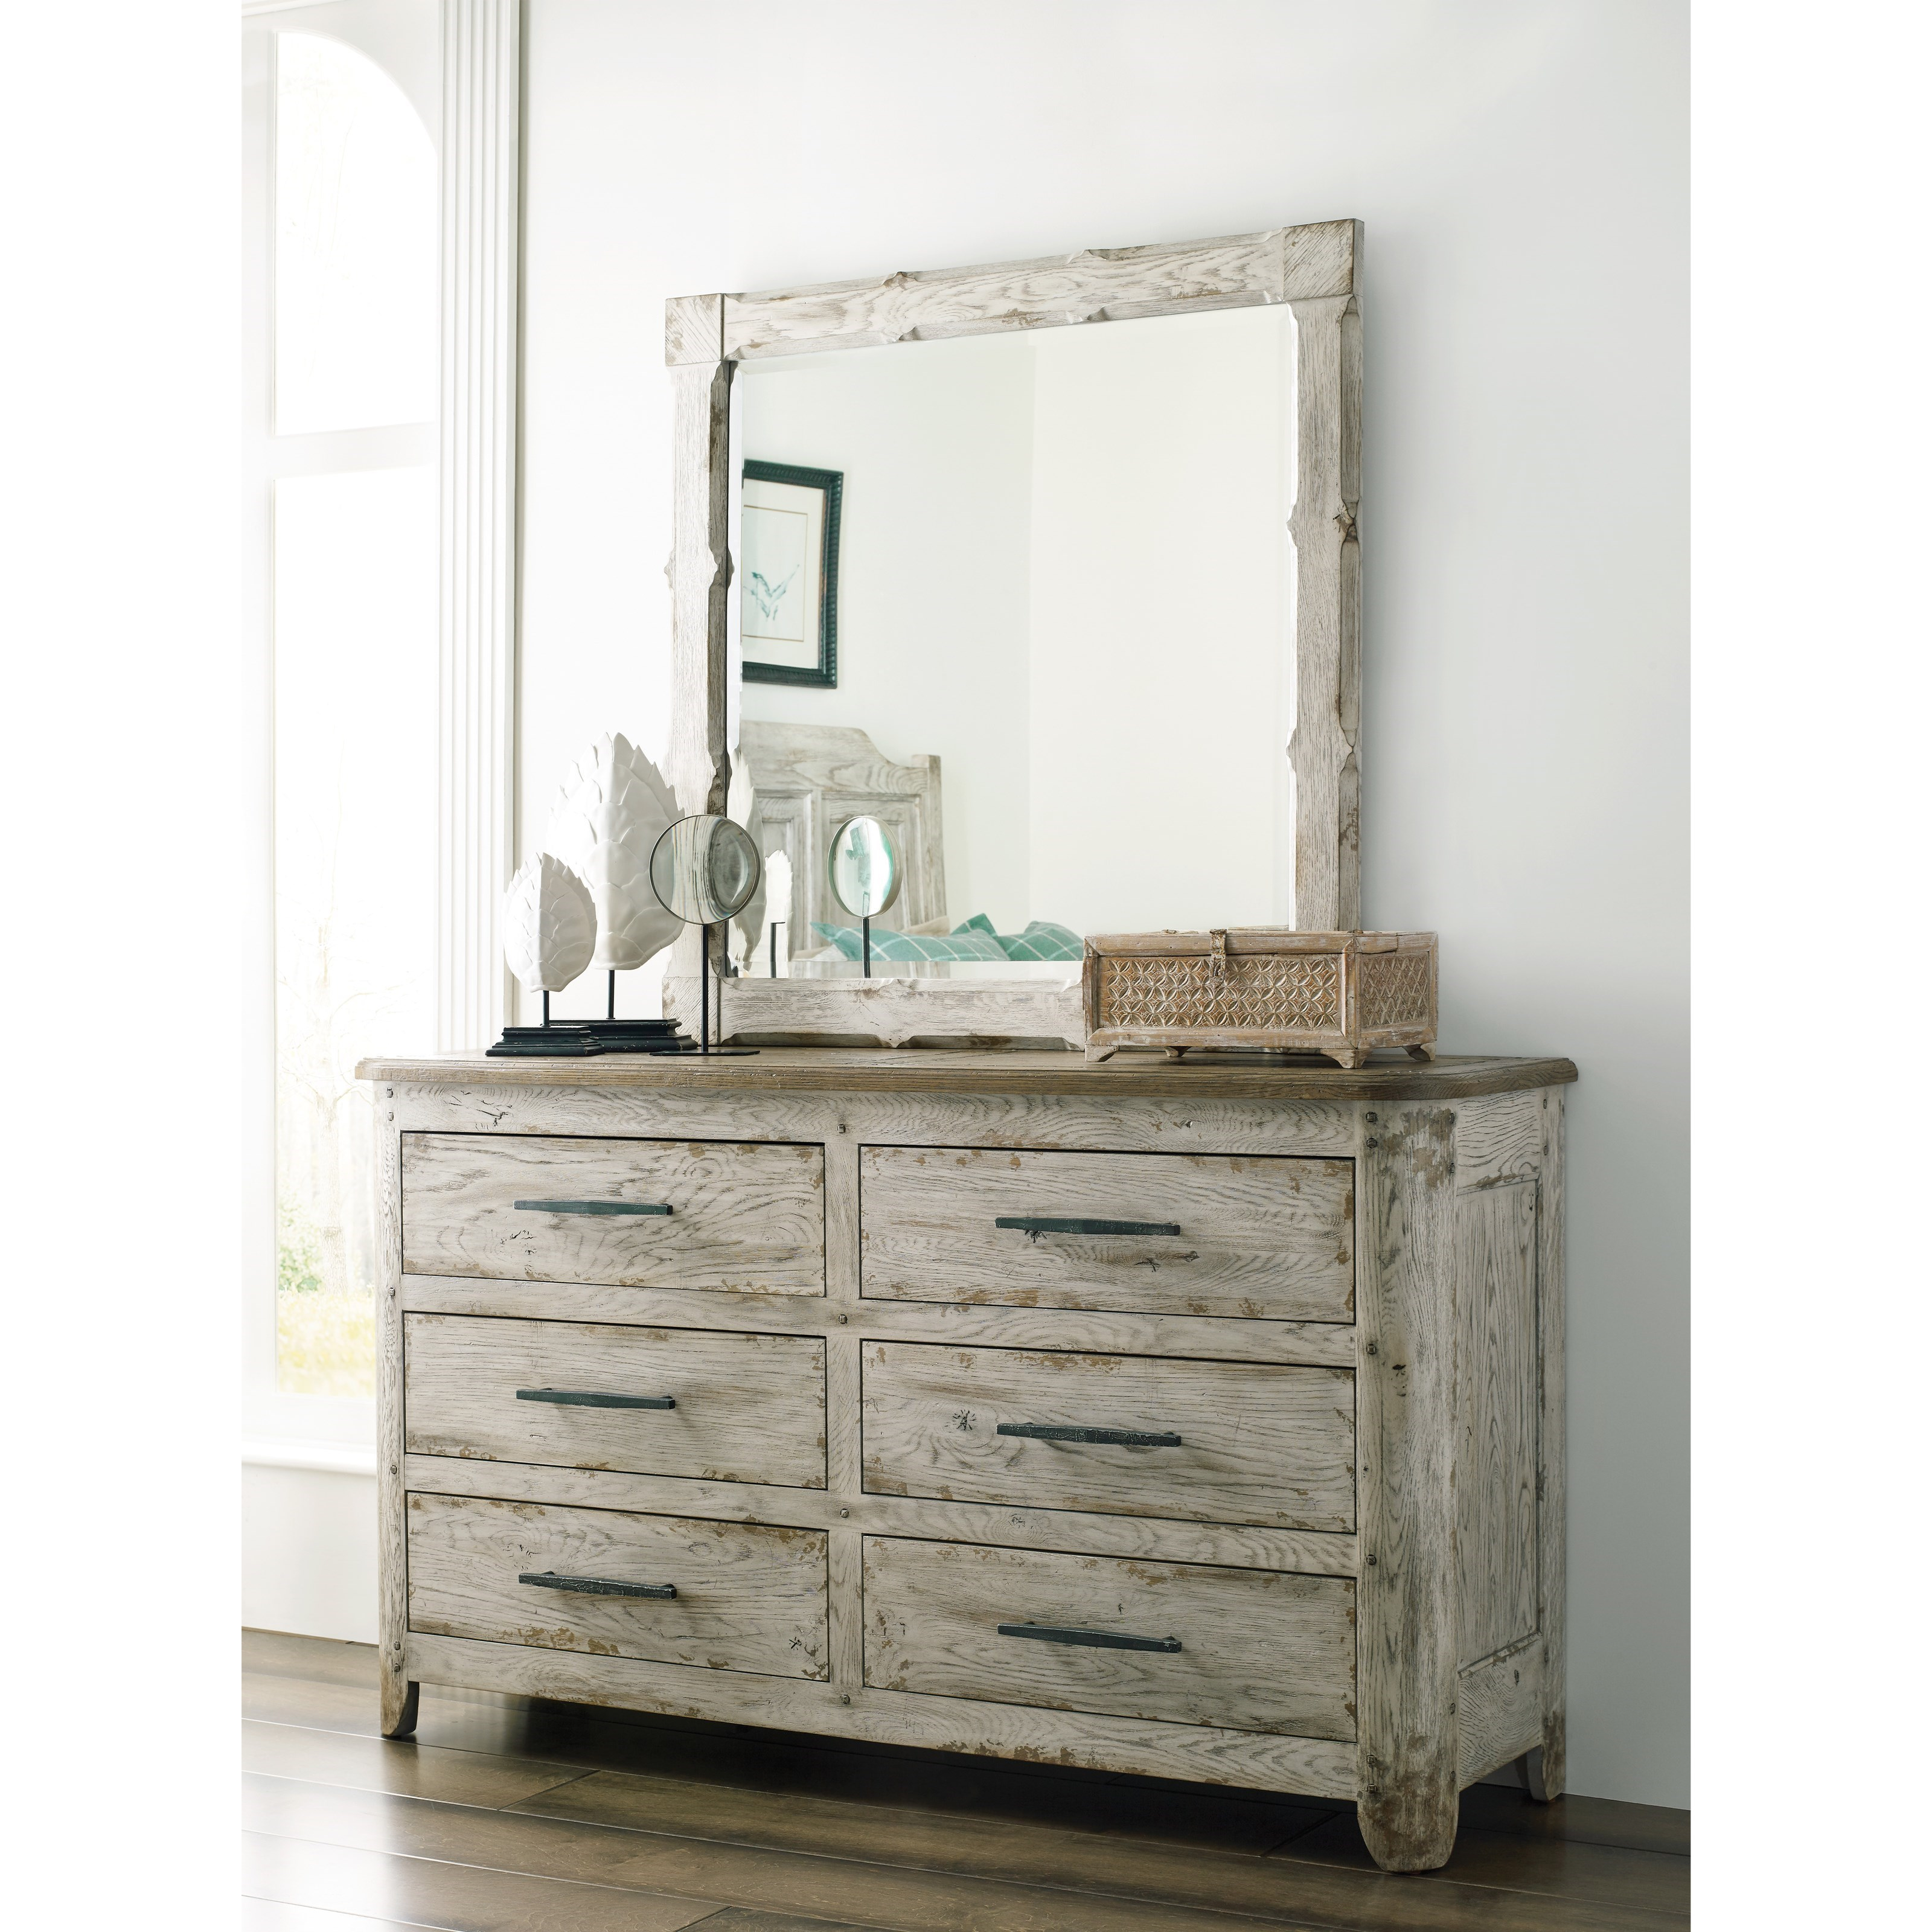 Trails Kennewick Dresser and Mirror Set by Kincaid Furniture at Johnny Janosik